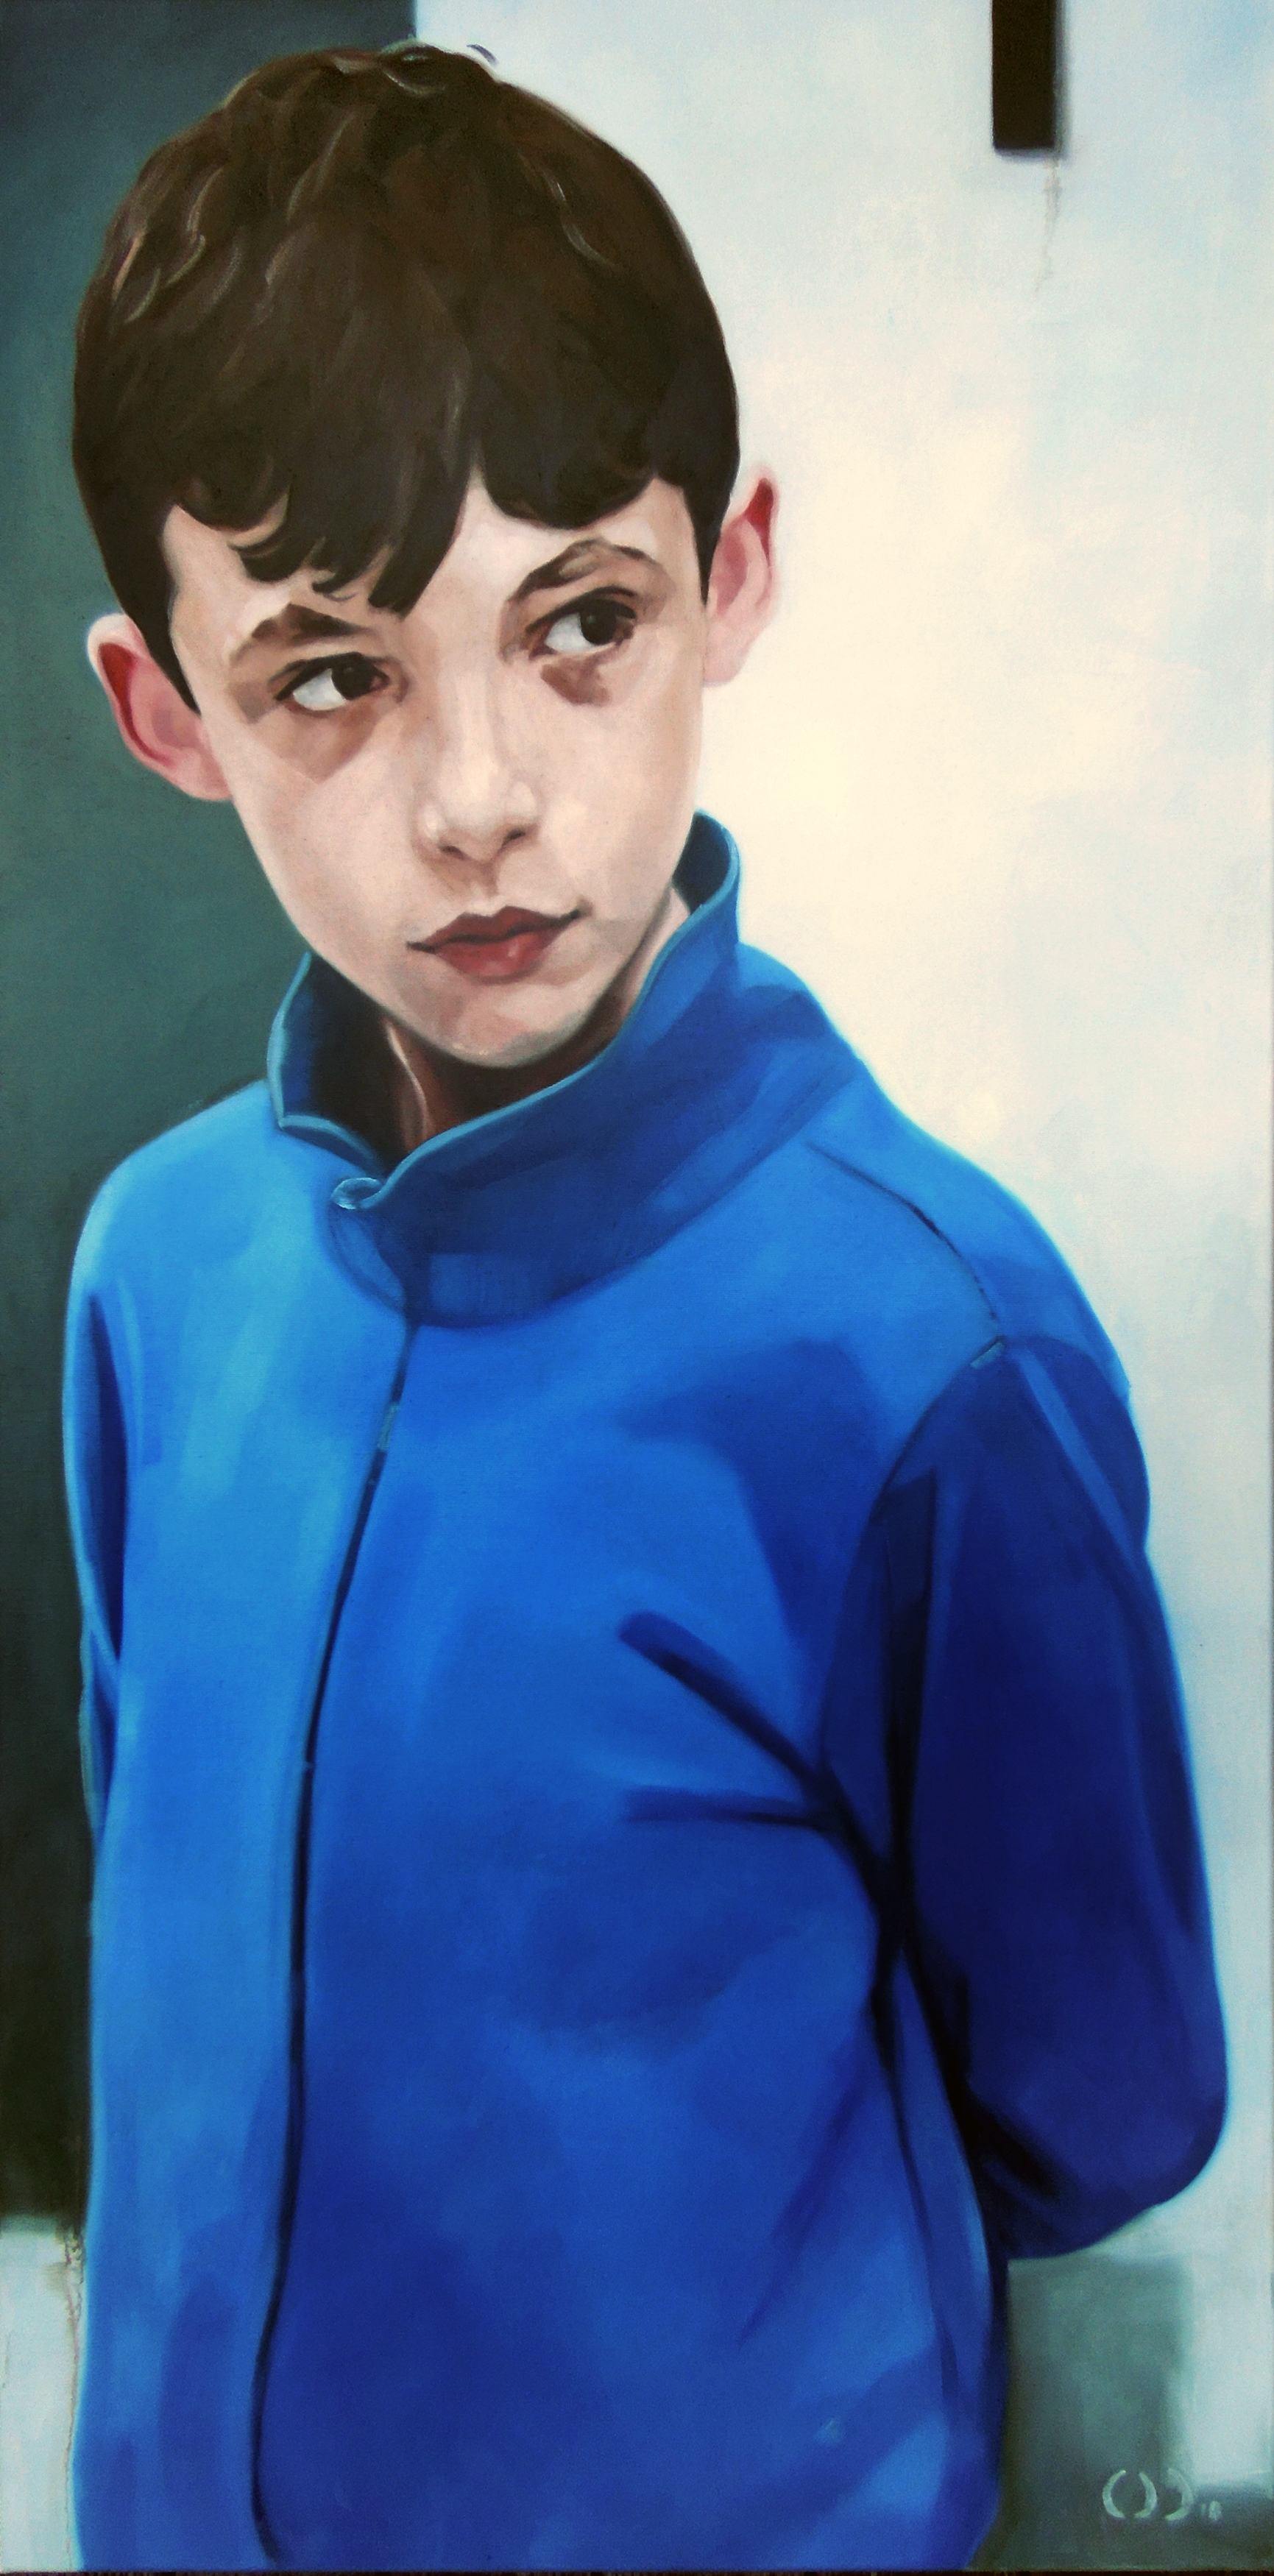 Junior oil on canvas 70x140cm 2018